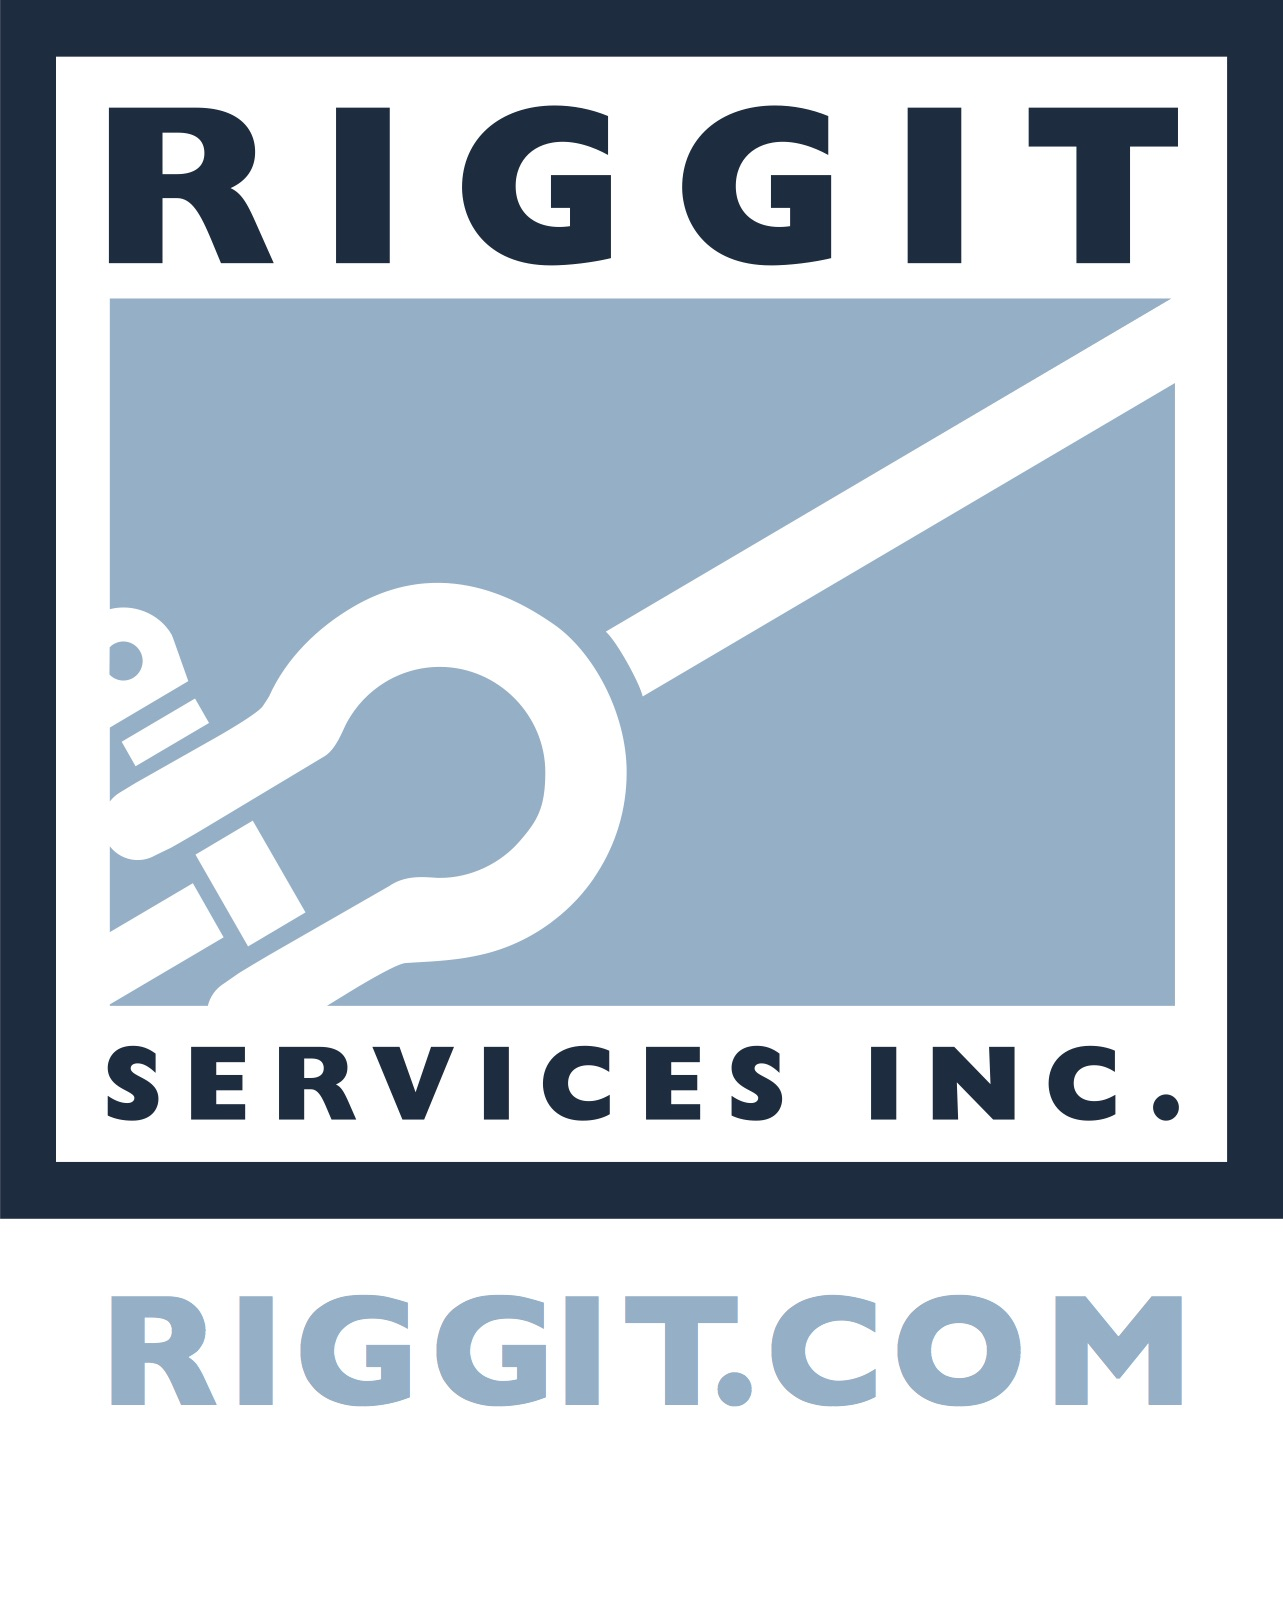 Riggit Services Inc.